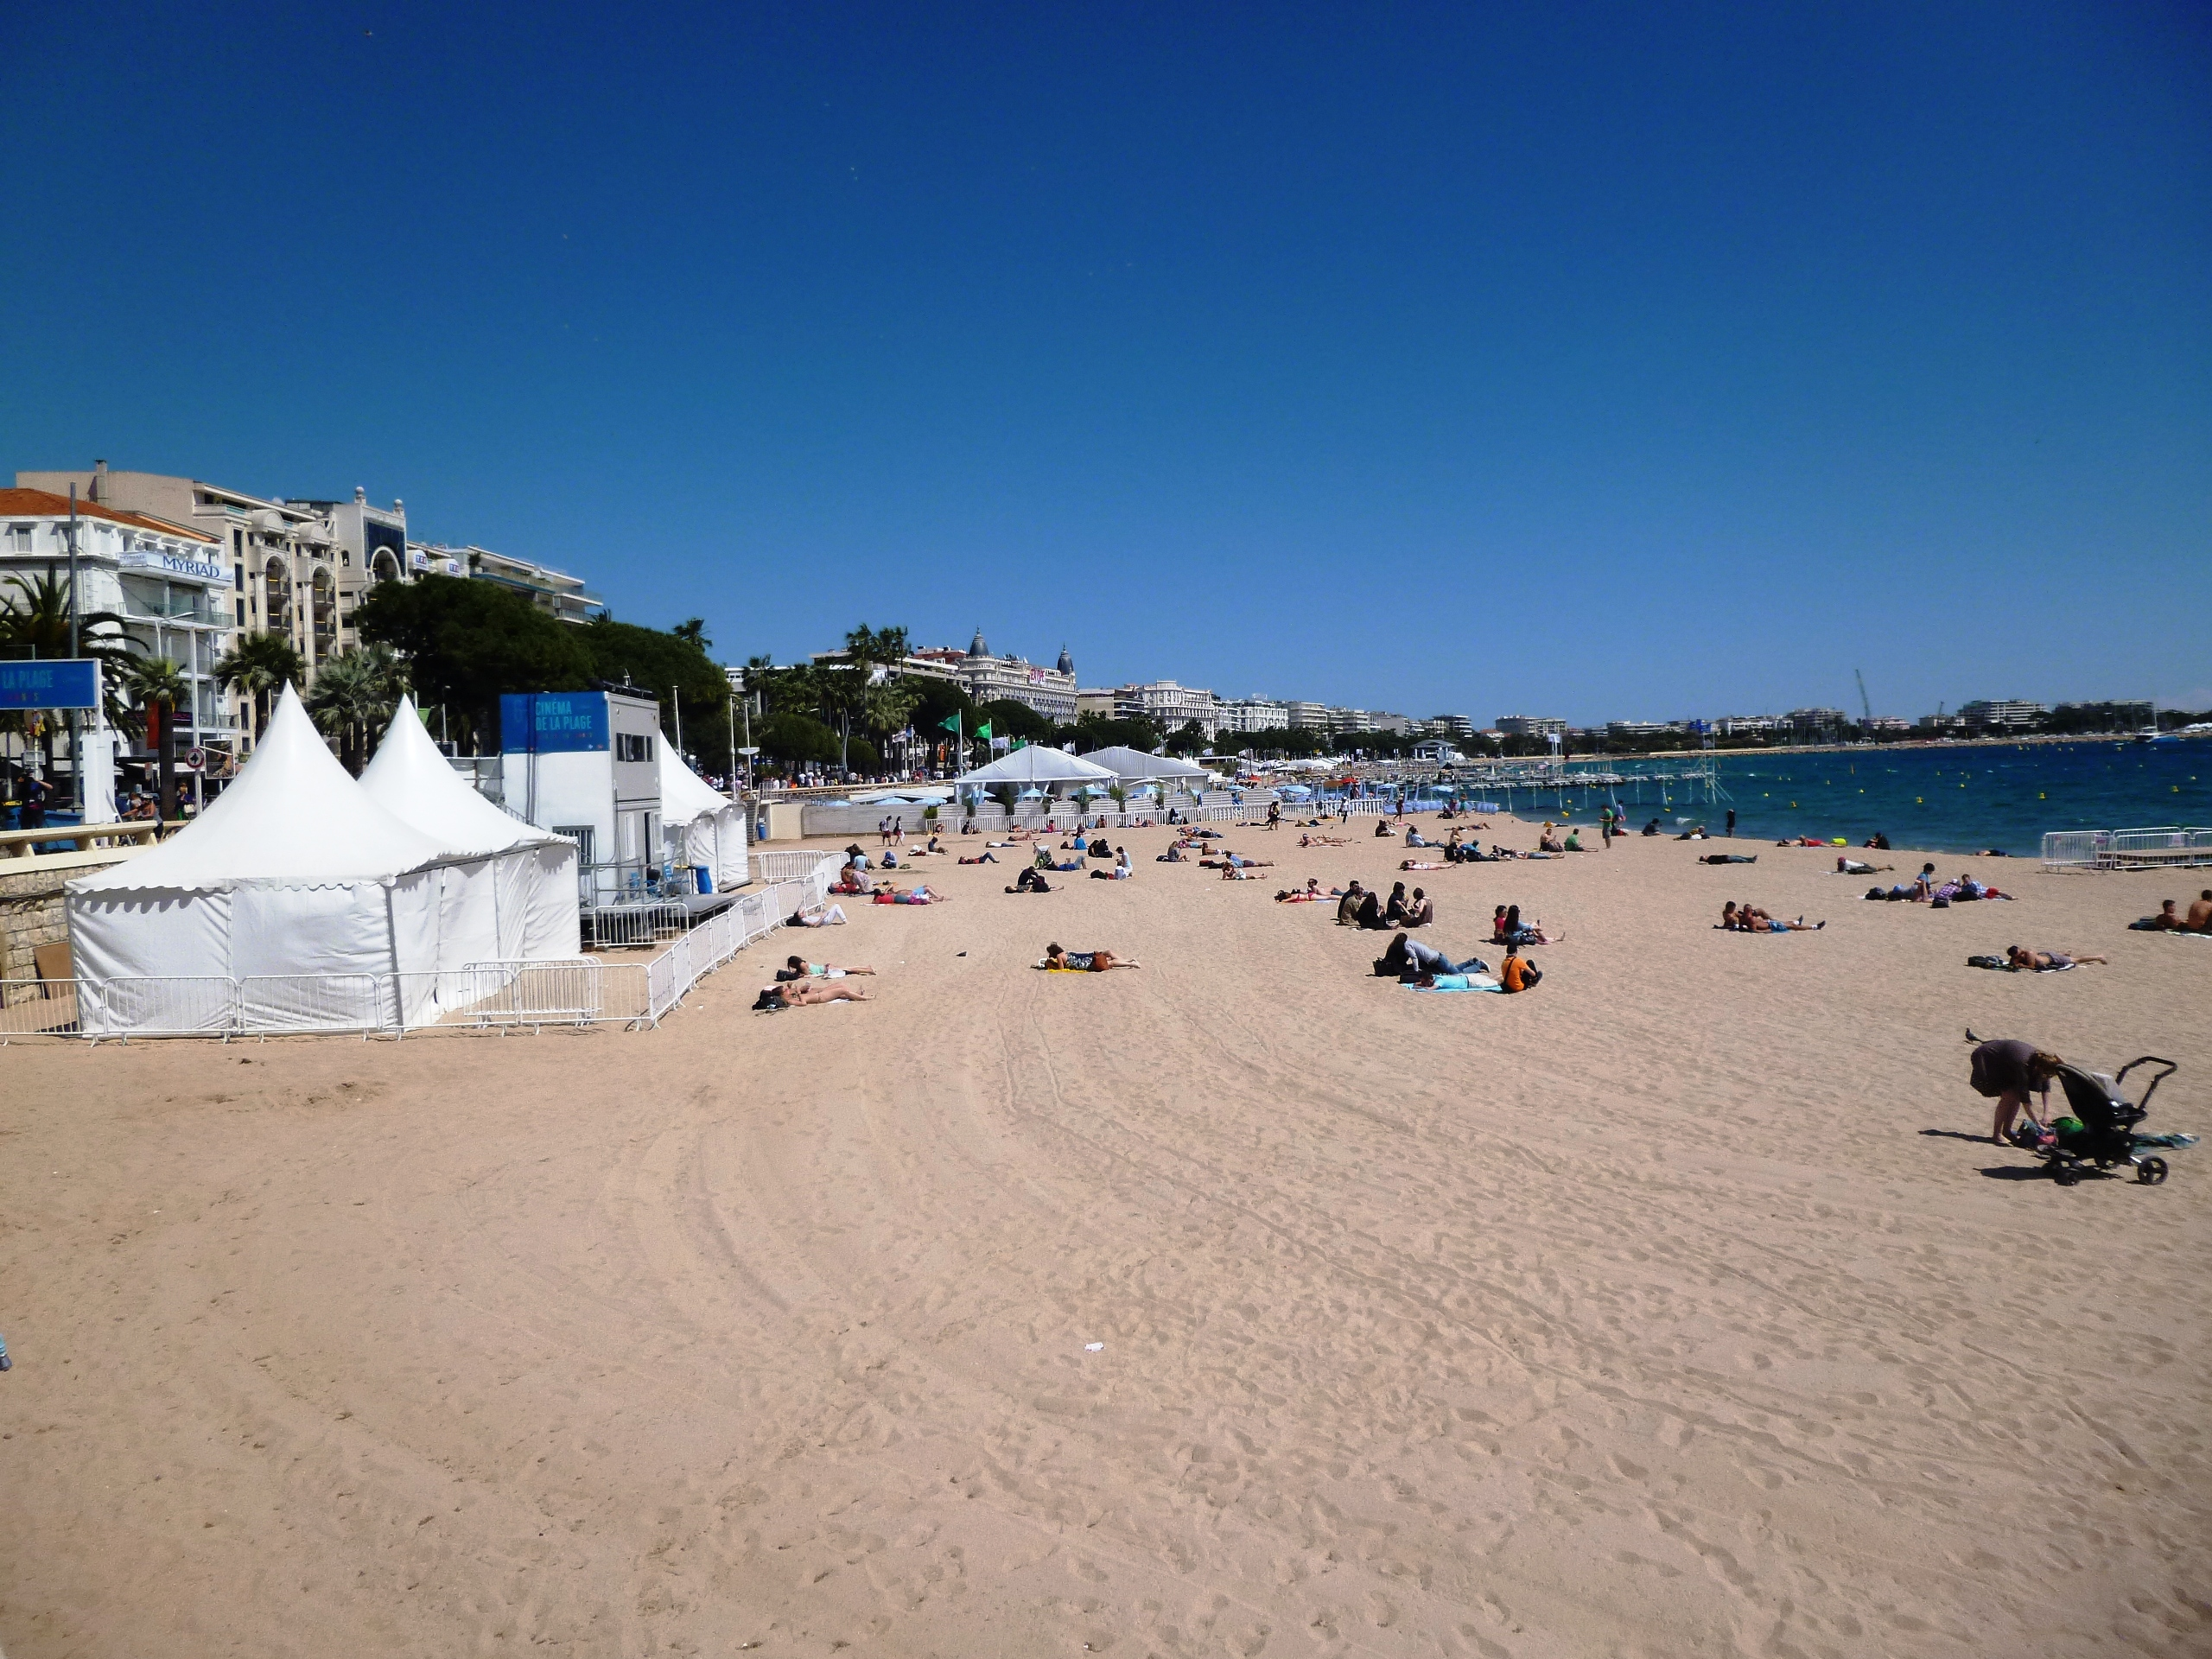 The stunning sandy beach of Cannes, just underneath the Croisette promenade